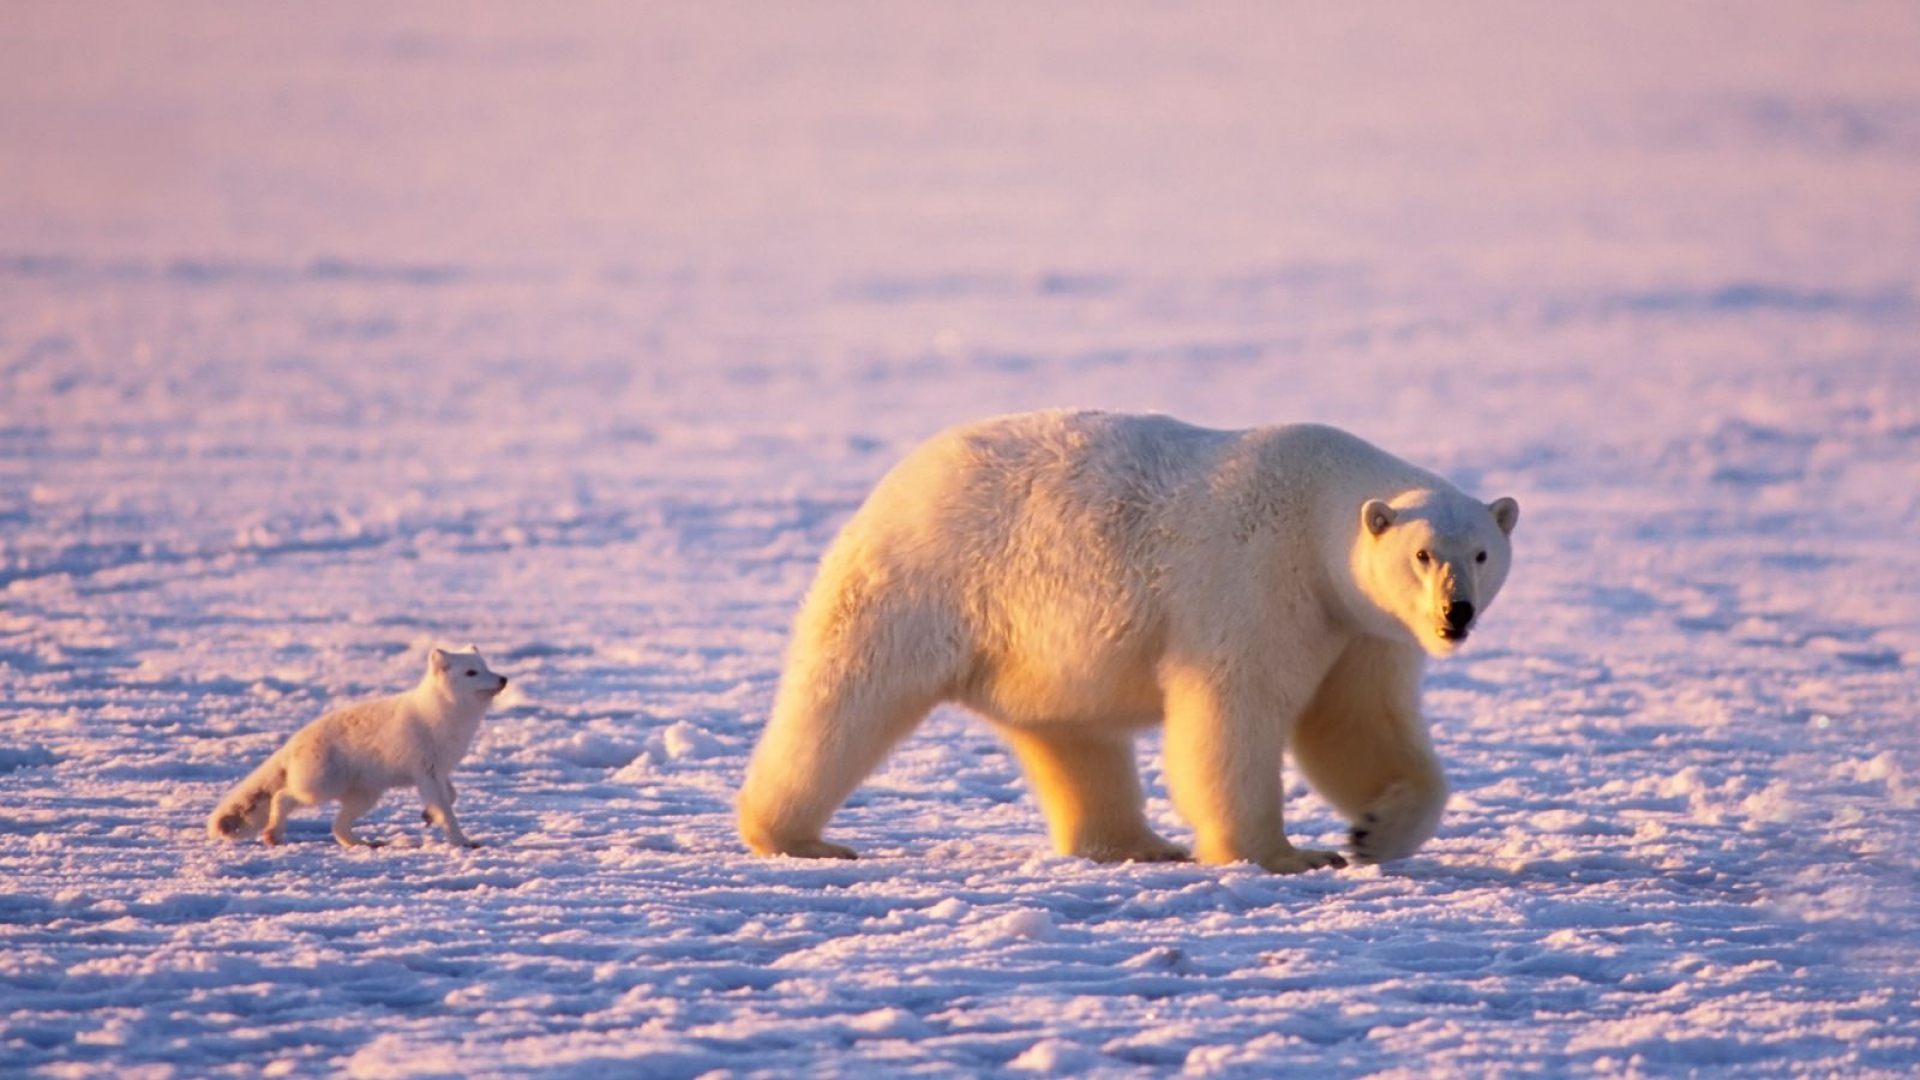 Animals-1920x1080-Full-HD-1080p-1920x1080-bear-polar-animal-s-wallpaper-wp3602502